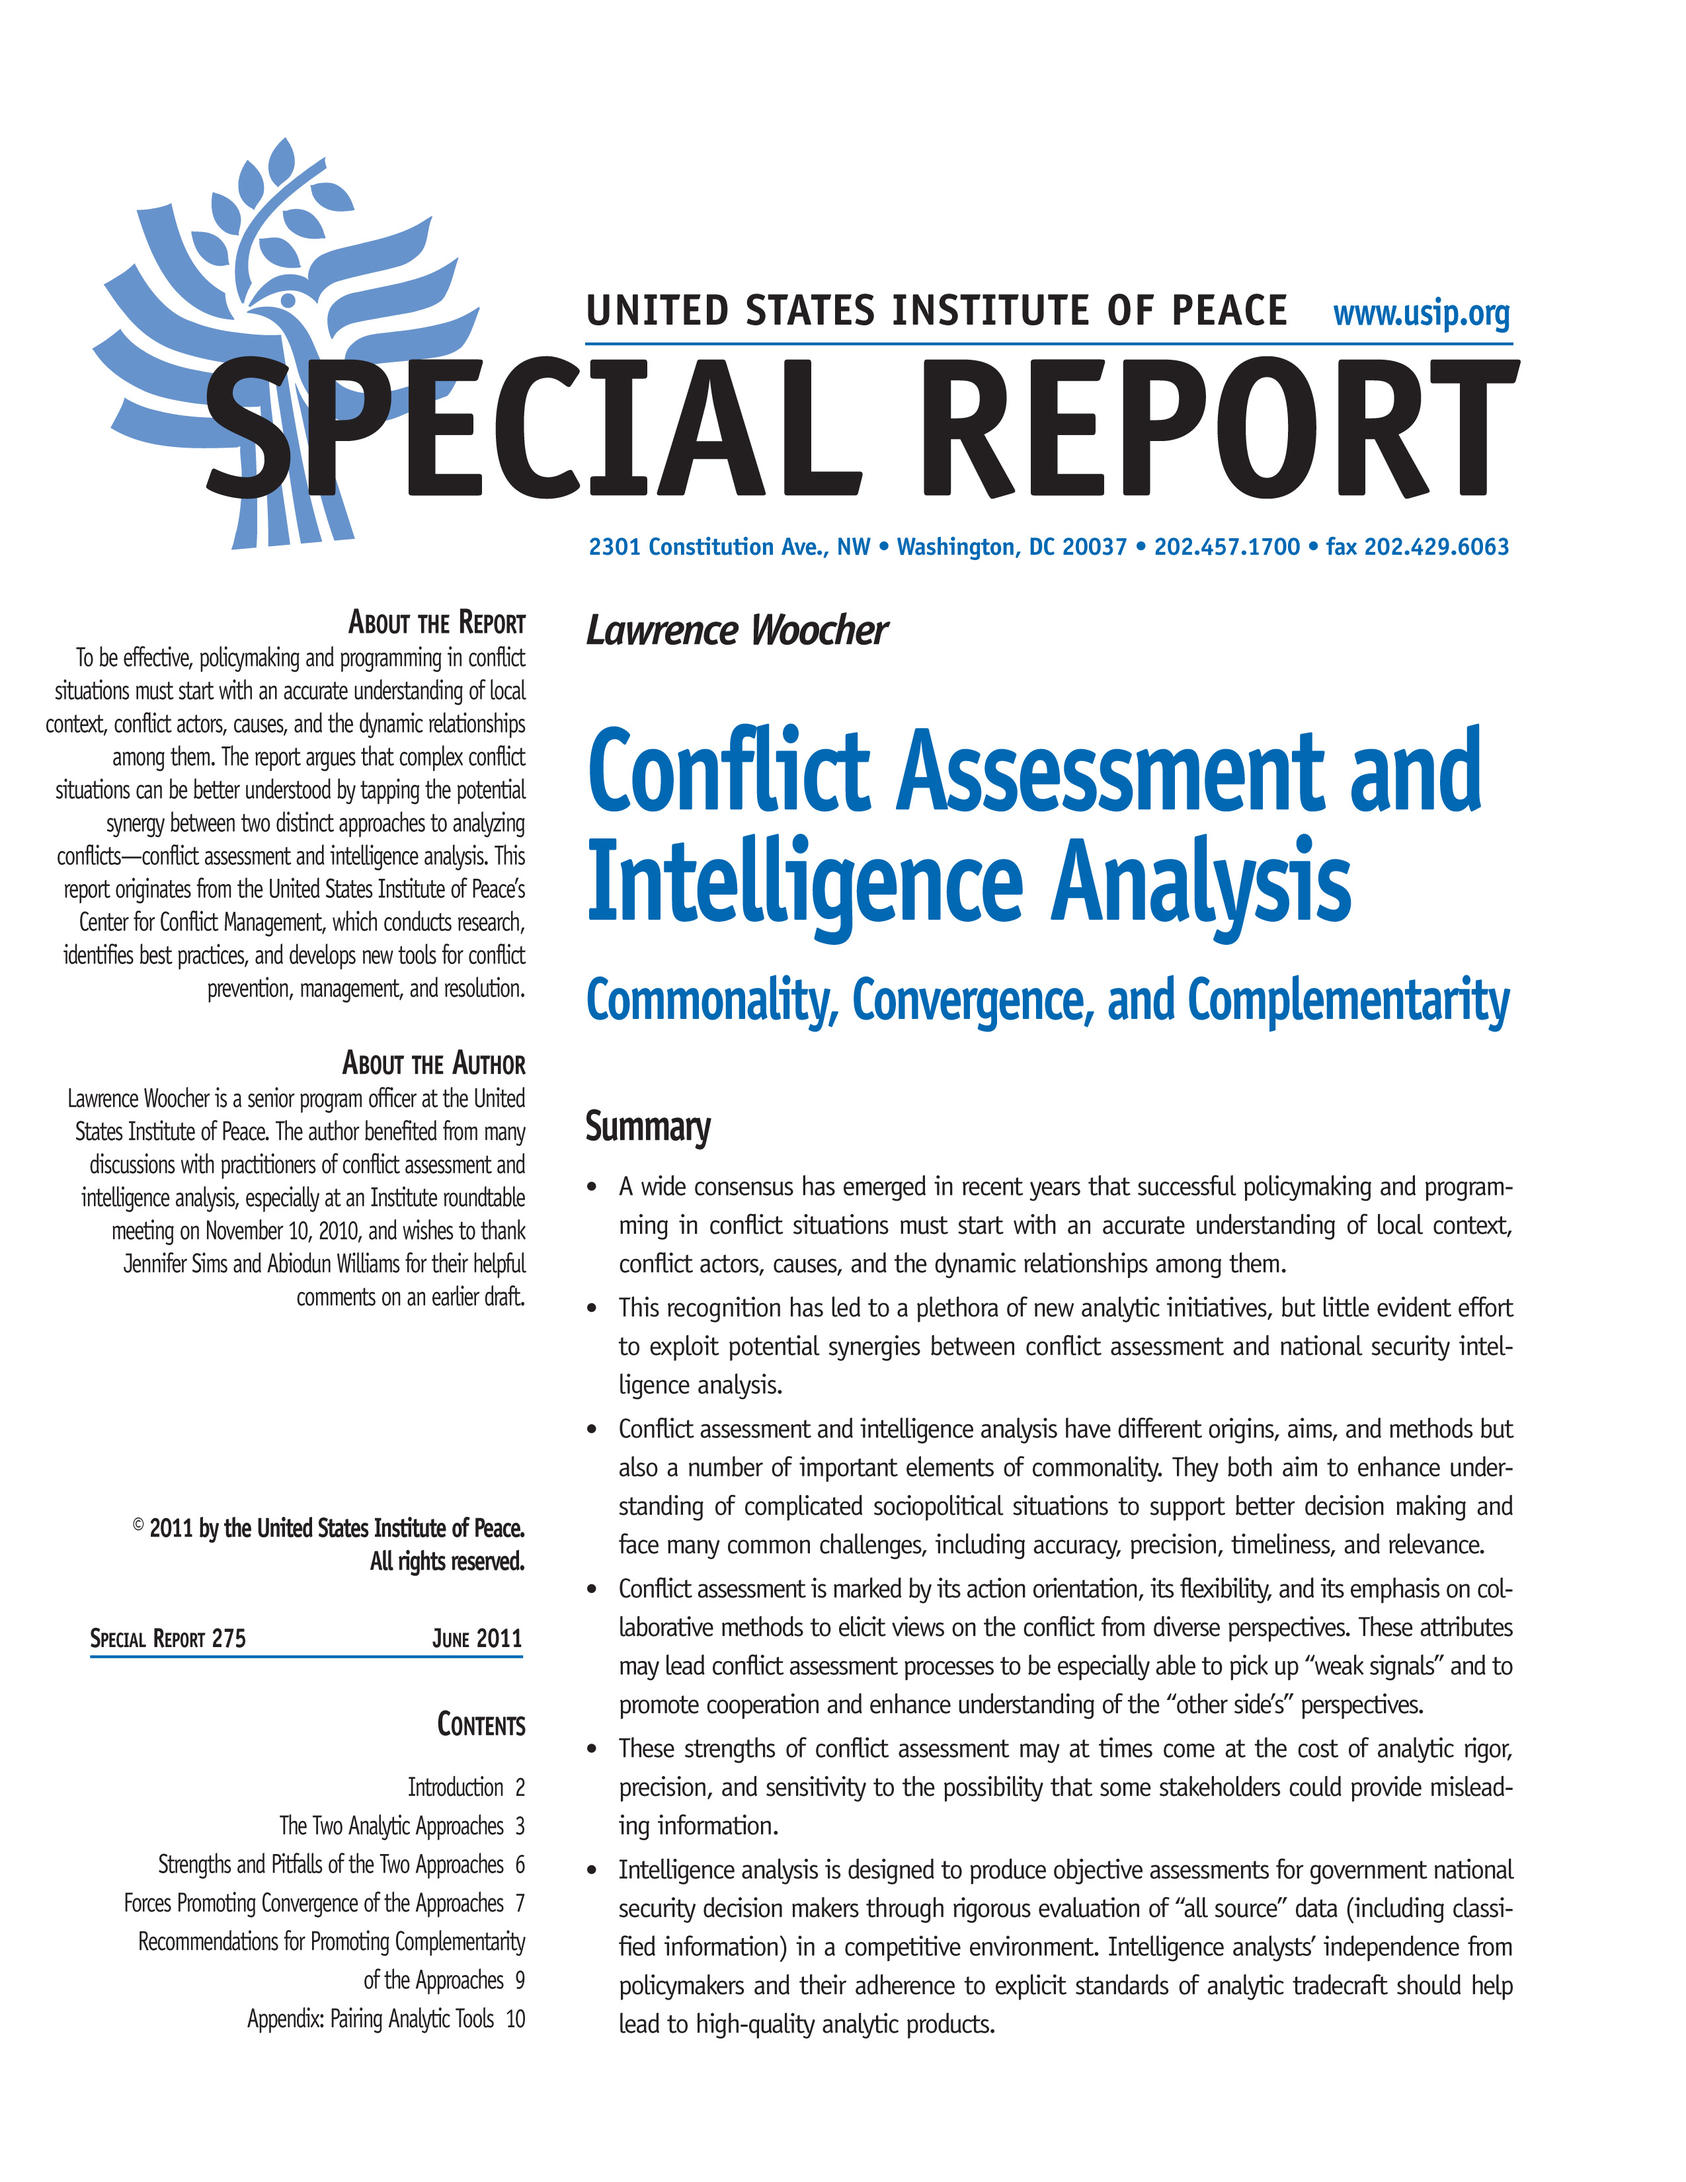 conflict analysis This professional program prepares students for practice and further academic  work by integrating conflict analysis and resolution theory, research, and practical .